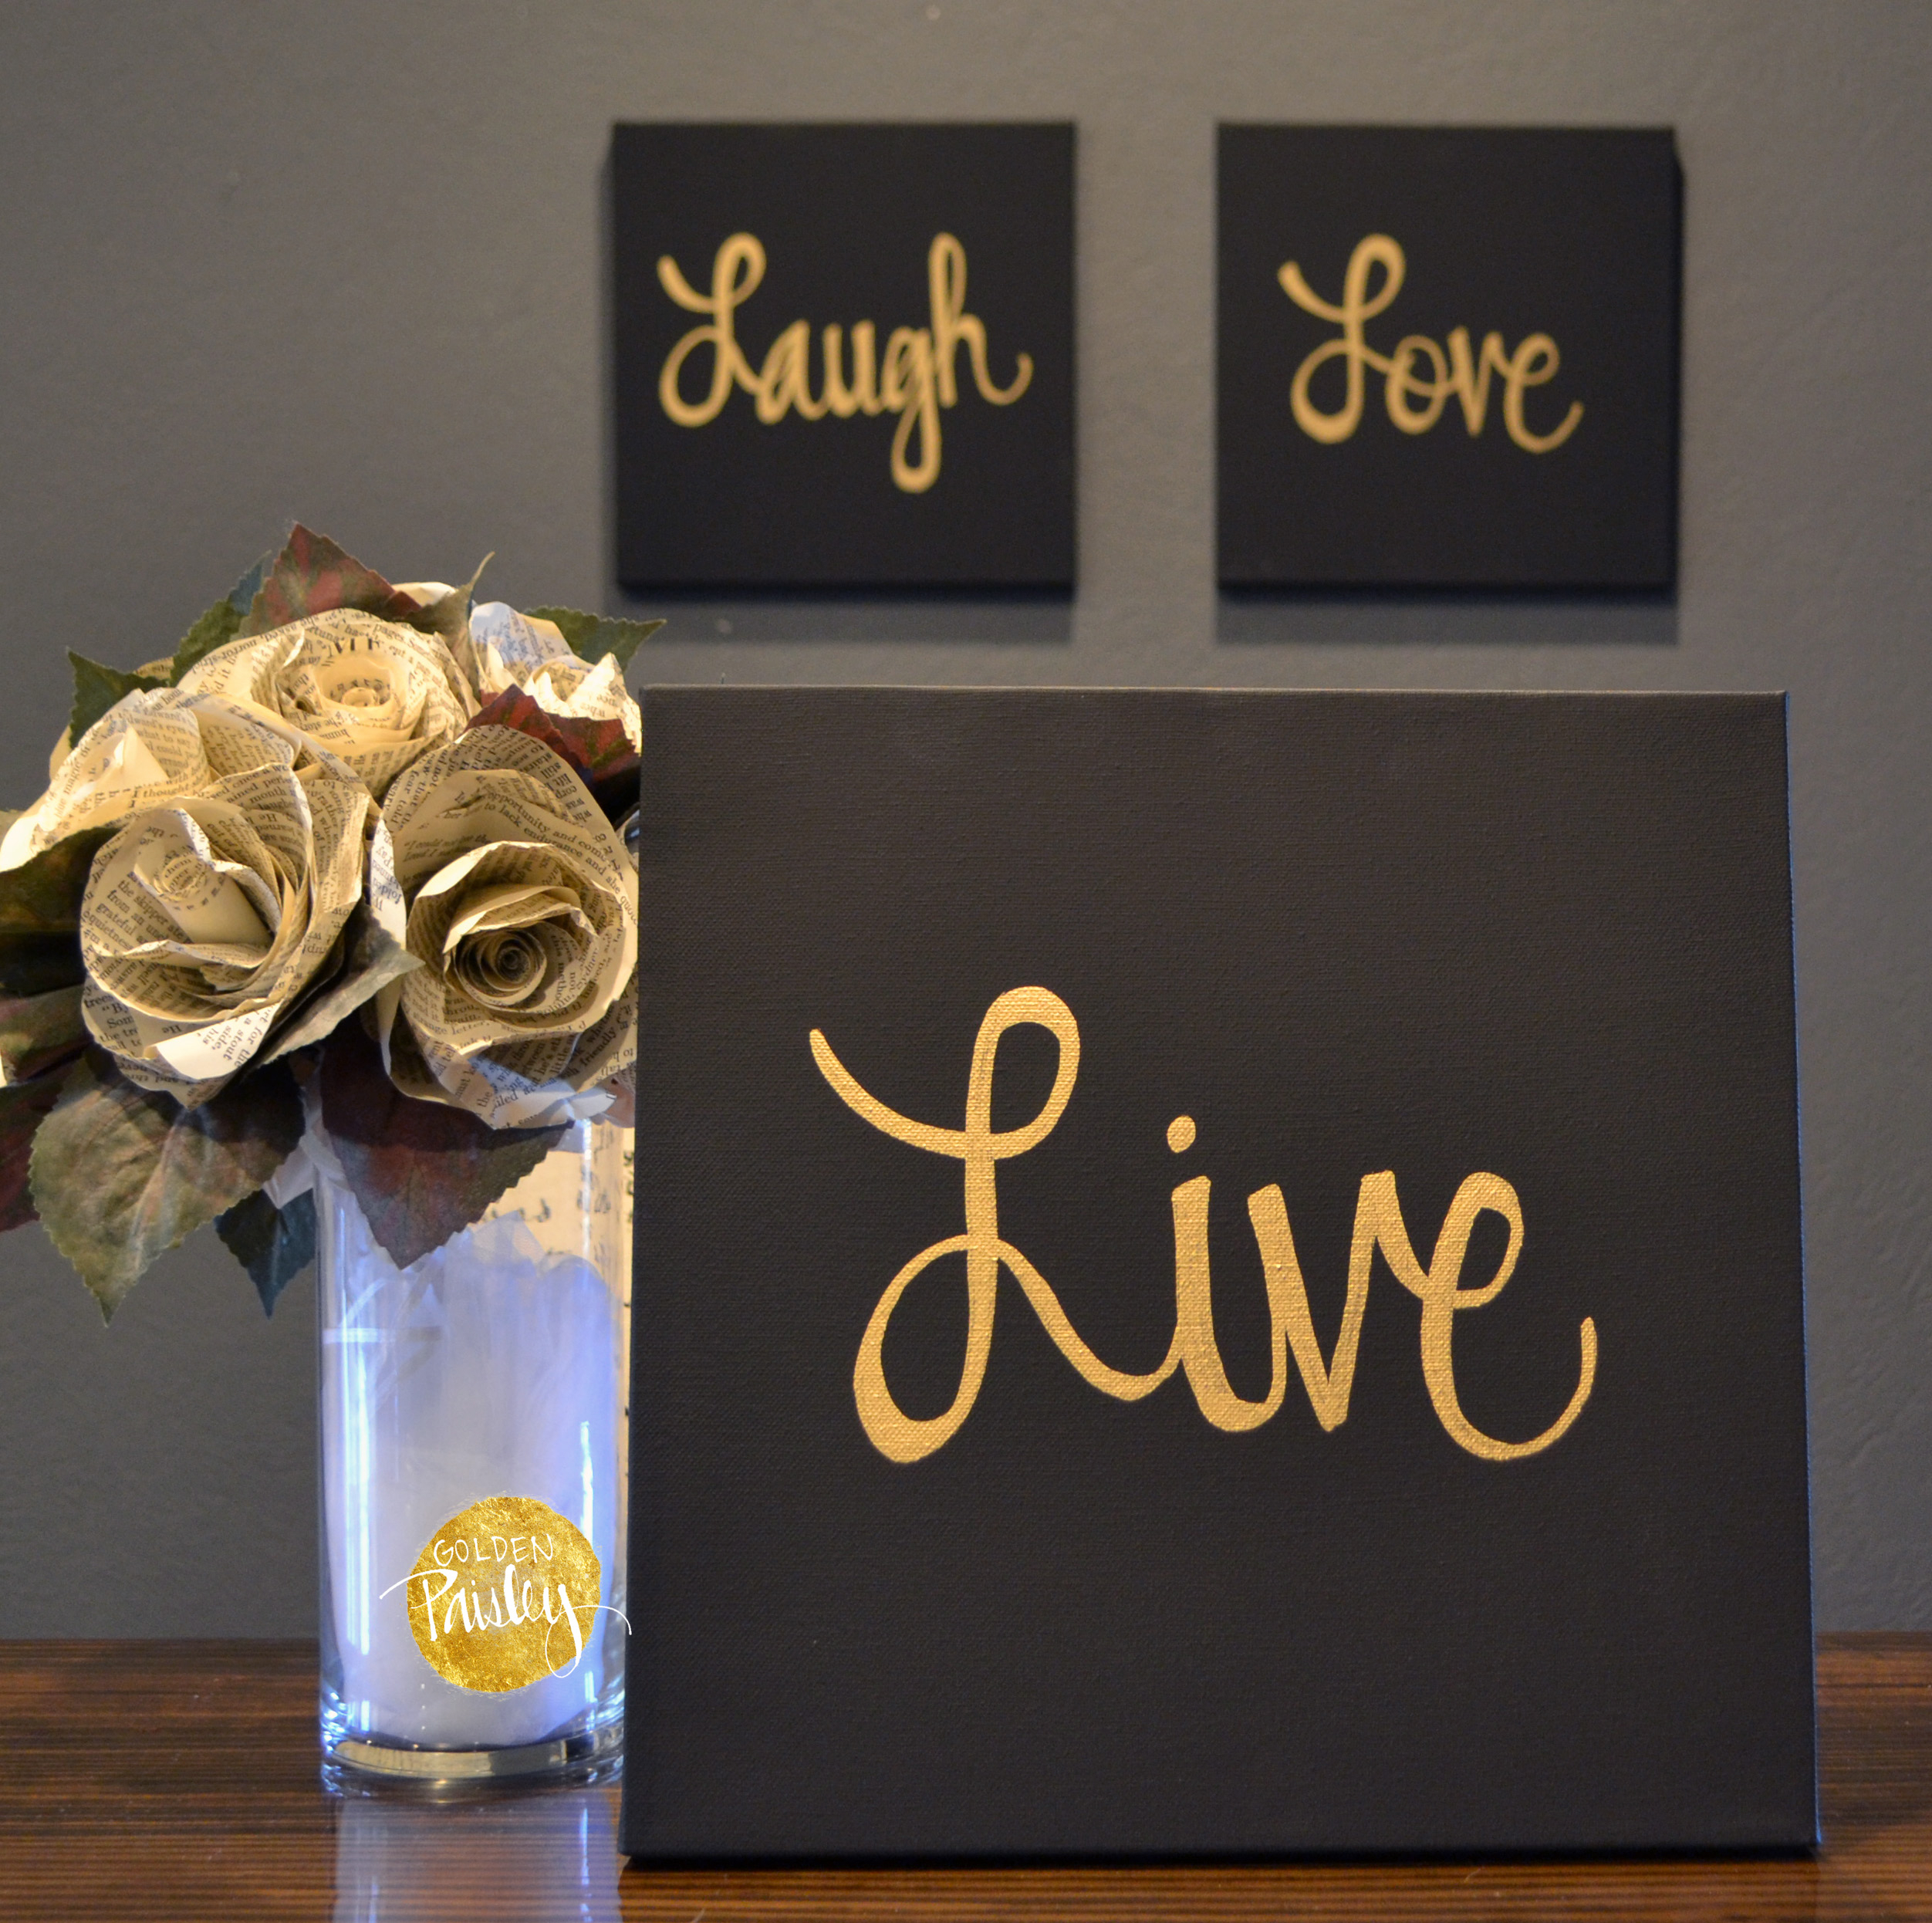 Live Love Laugh 3 Piece Black Wall Decor Sets Throughout Most Recent Live Laugh Love Black & Gold 3 Piece Wall Decor Set (Gallery 2 of 20)